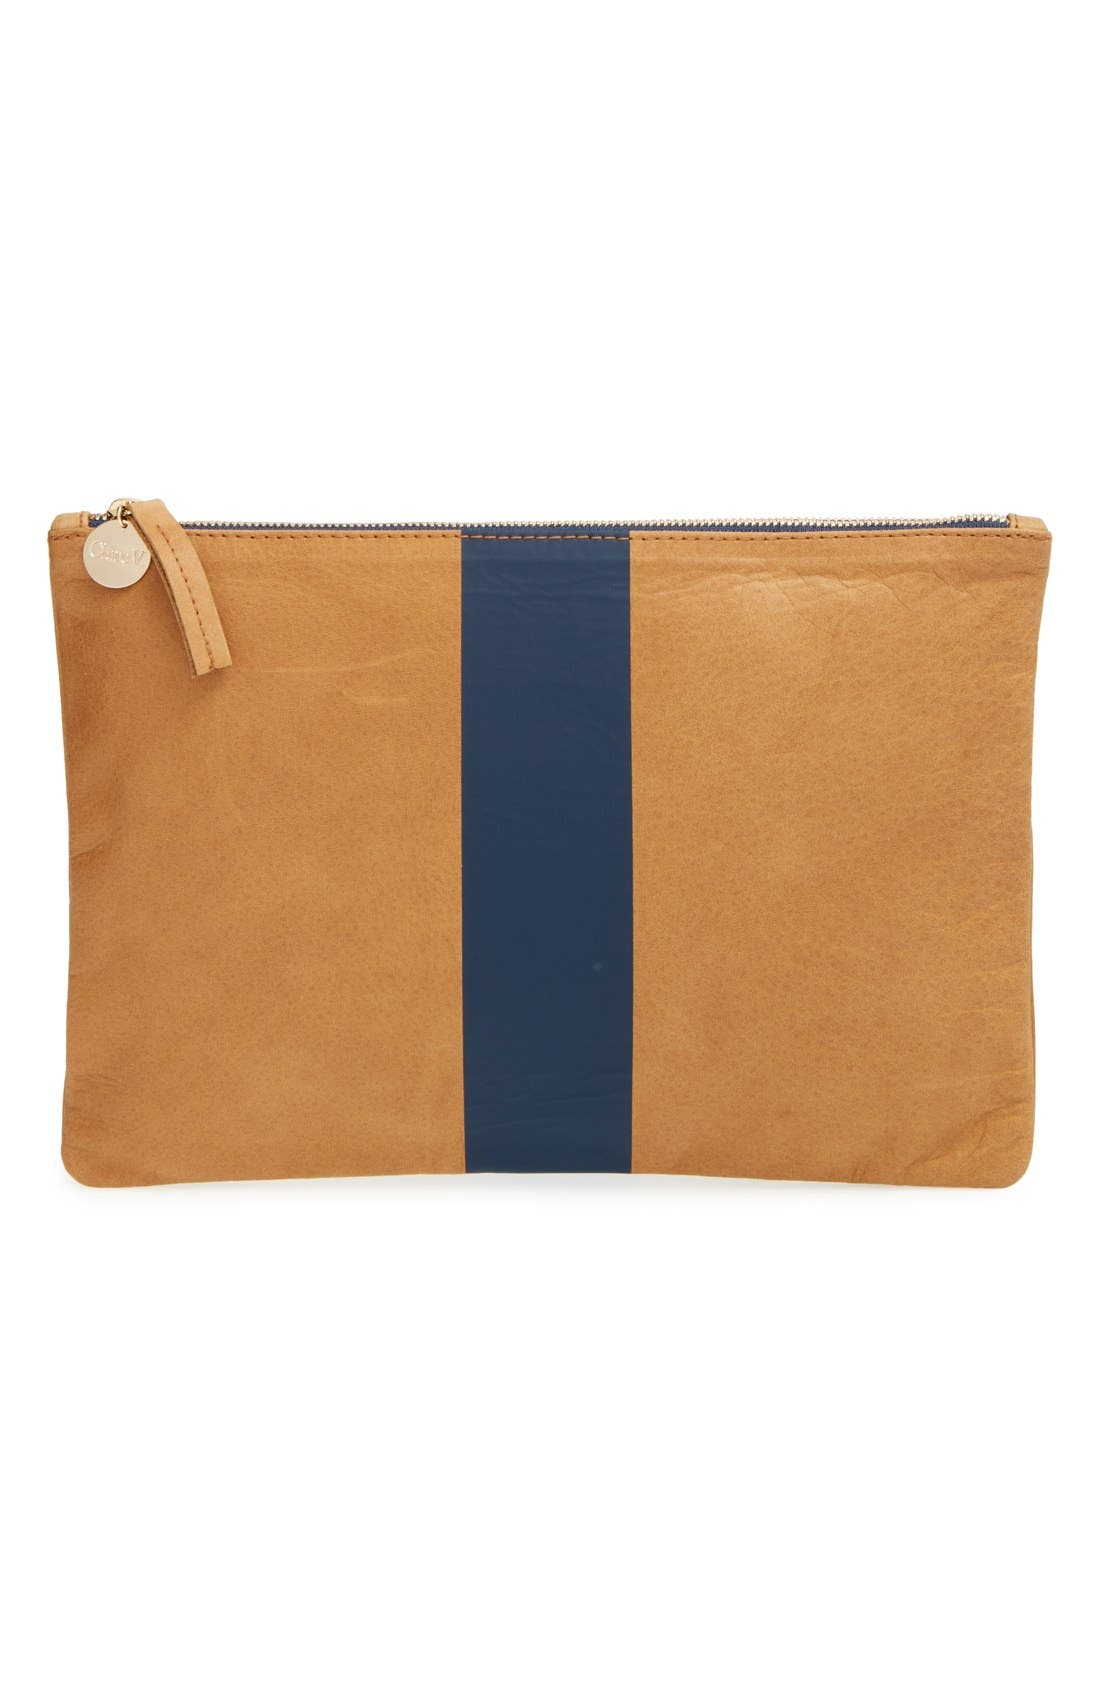 Alternate Image 1 Selected - Clare V. Flat Clutch